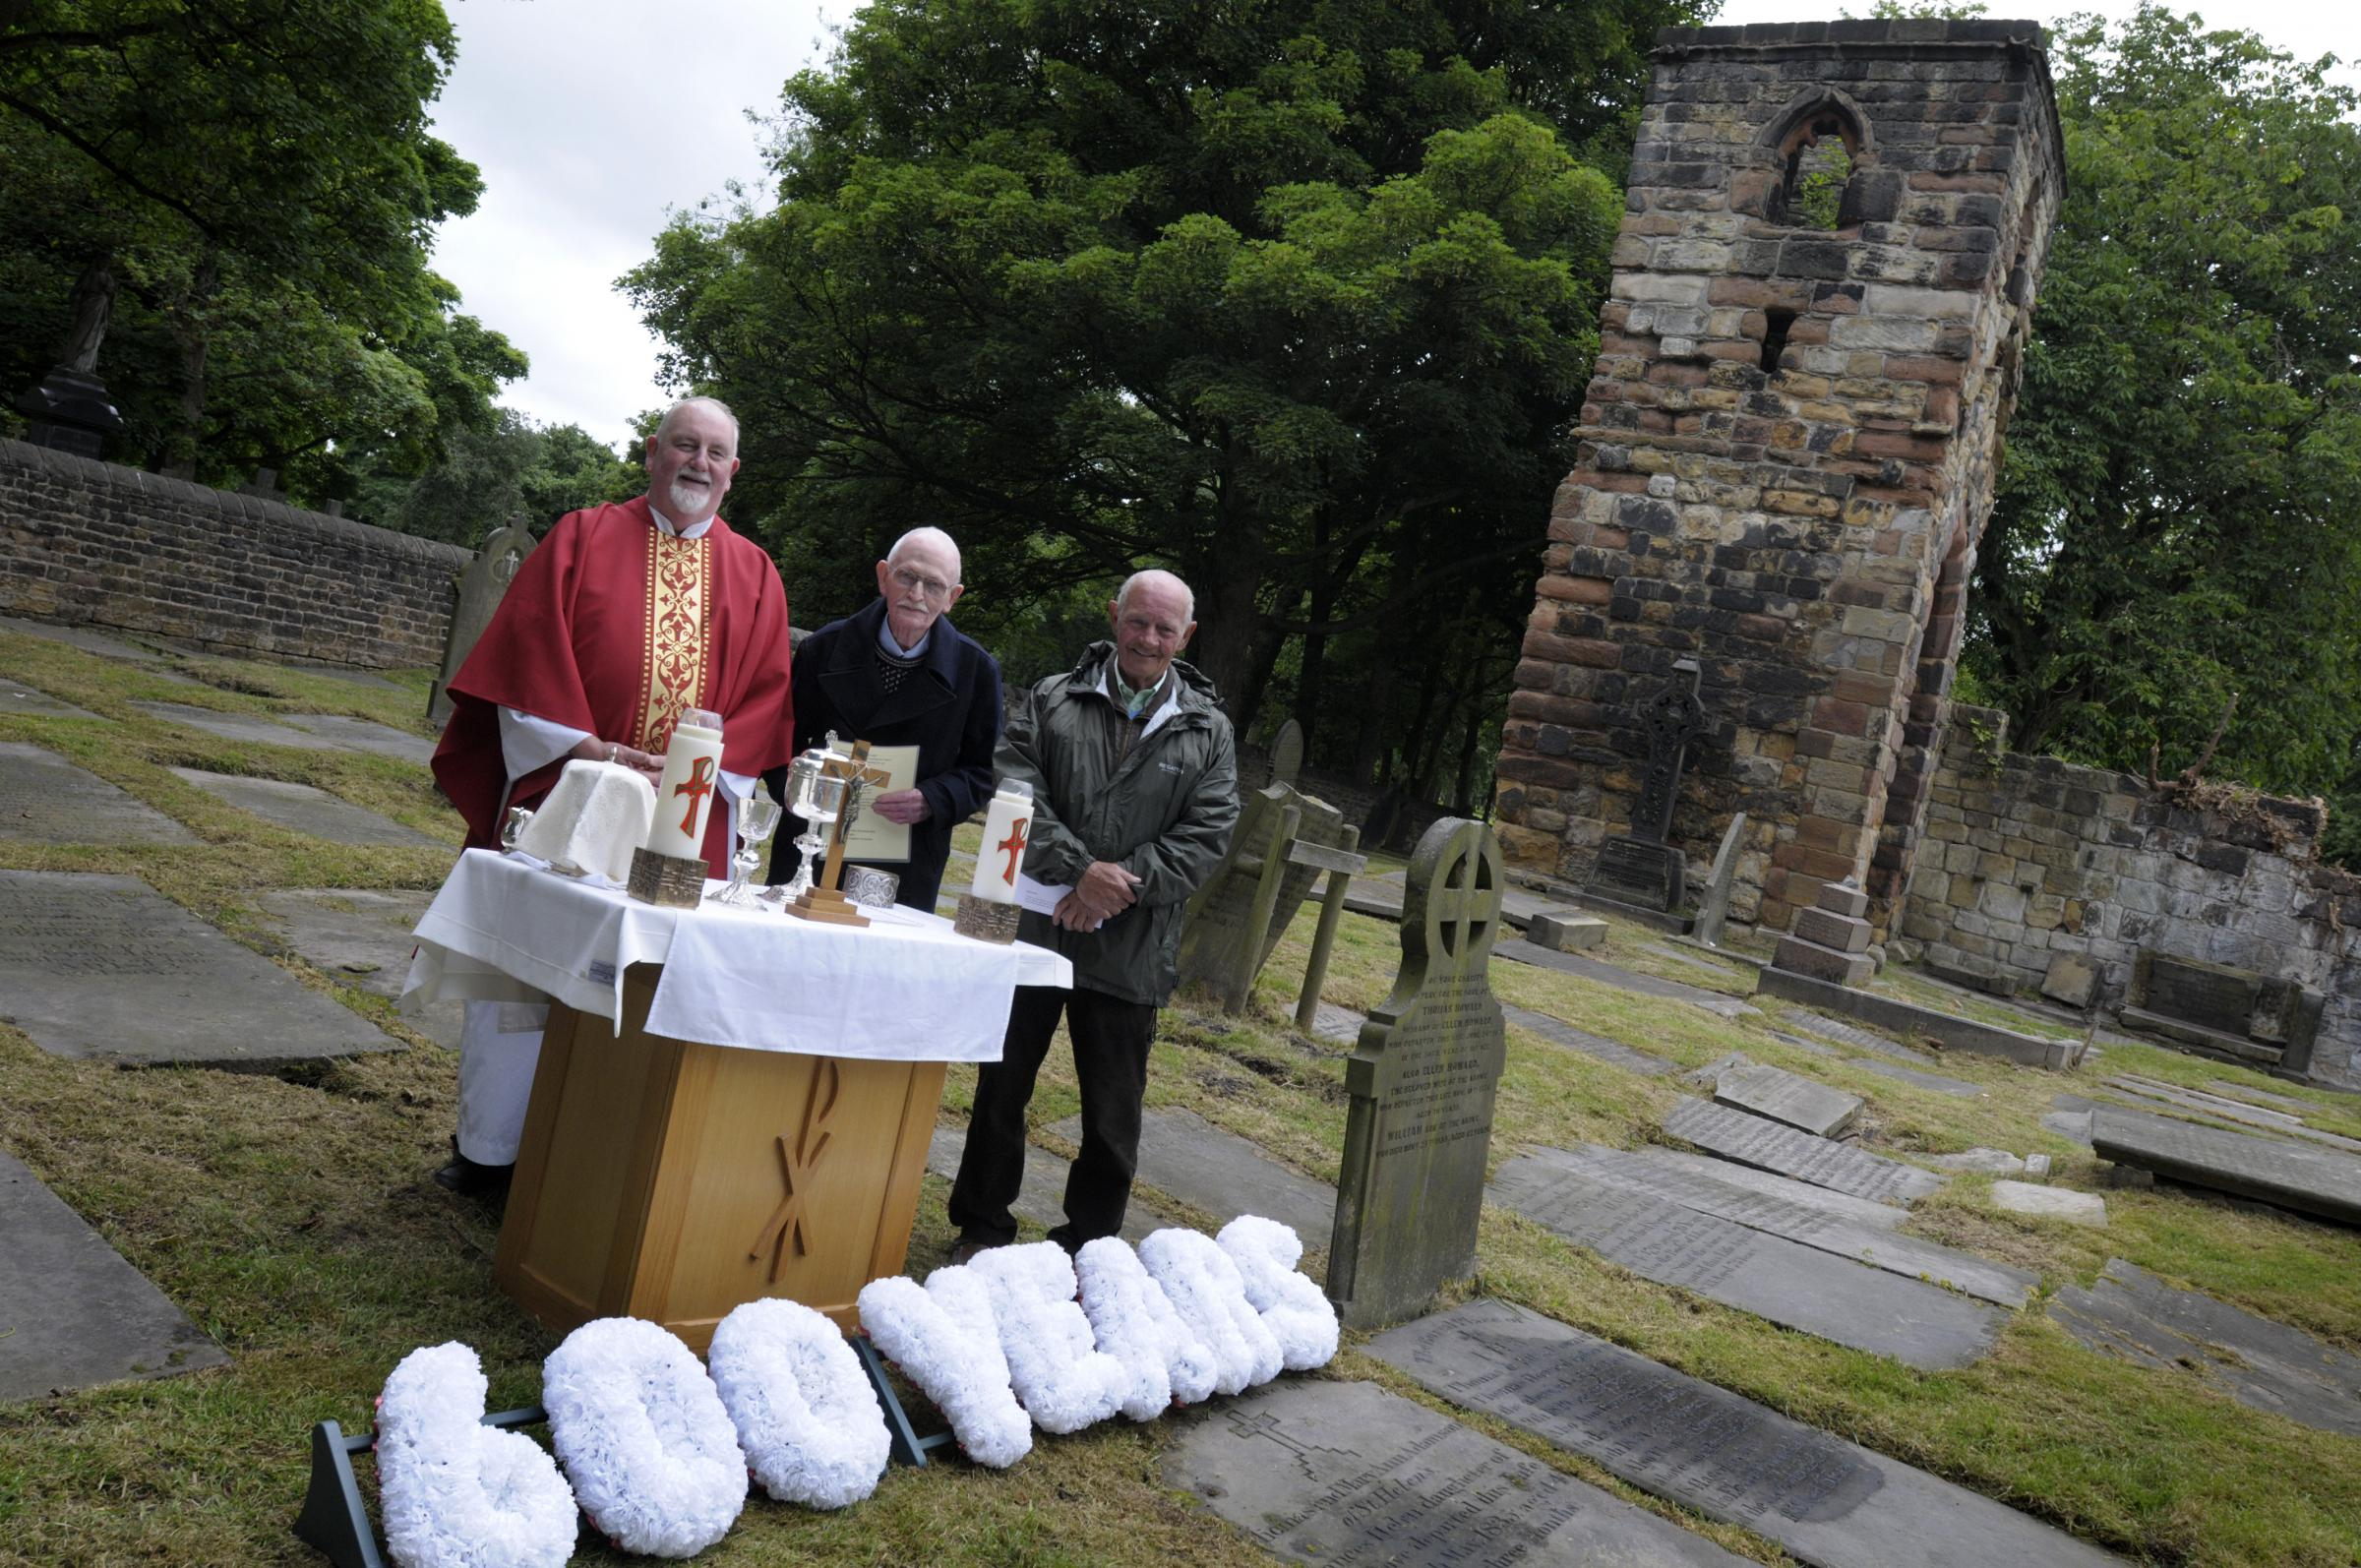 Kevin Heneghan (middle) with Father Tom Gagie and historian Ted Forsyth at the Windleshaw Chantry